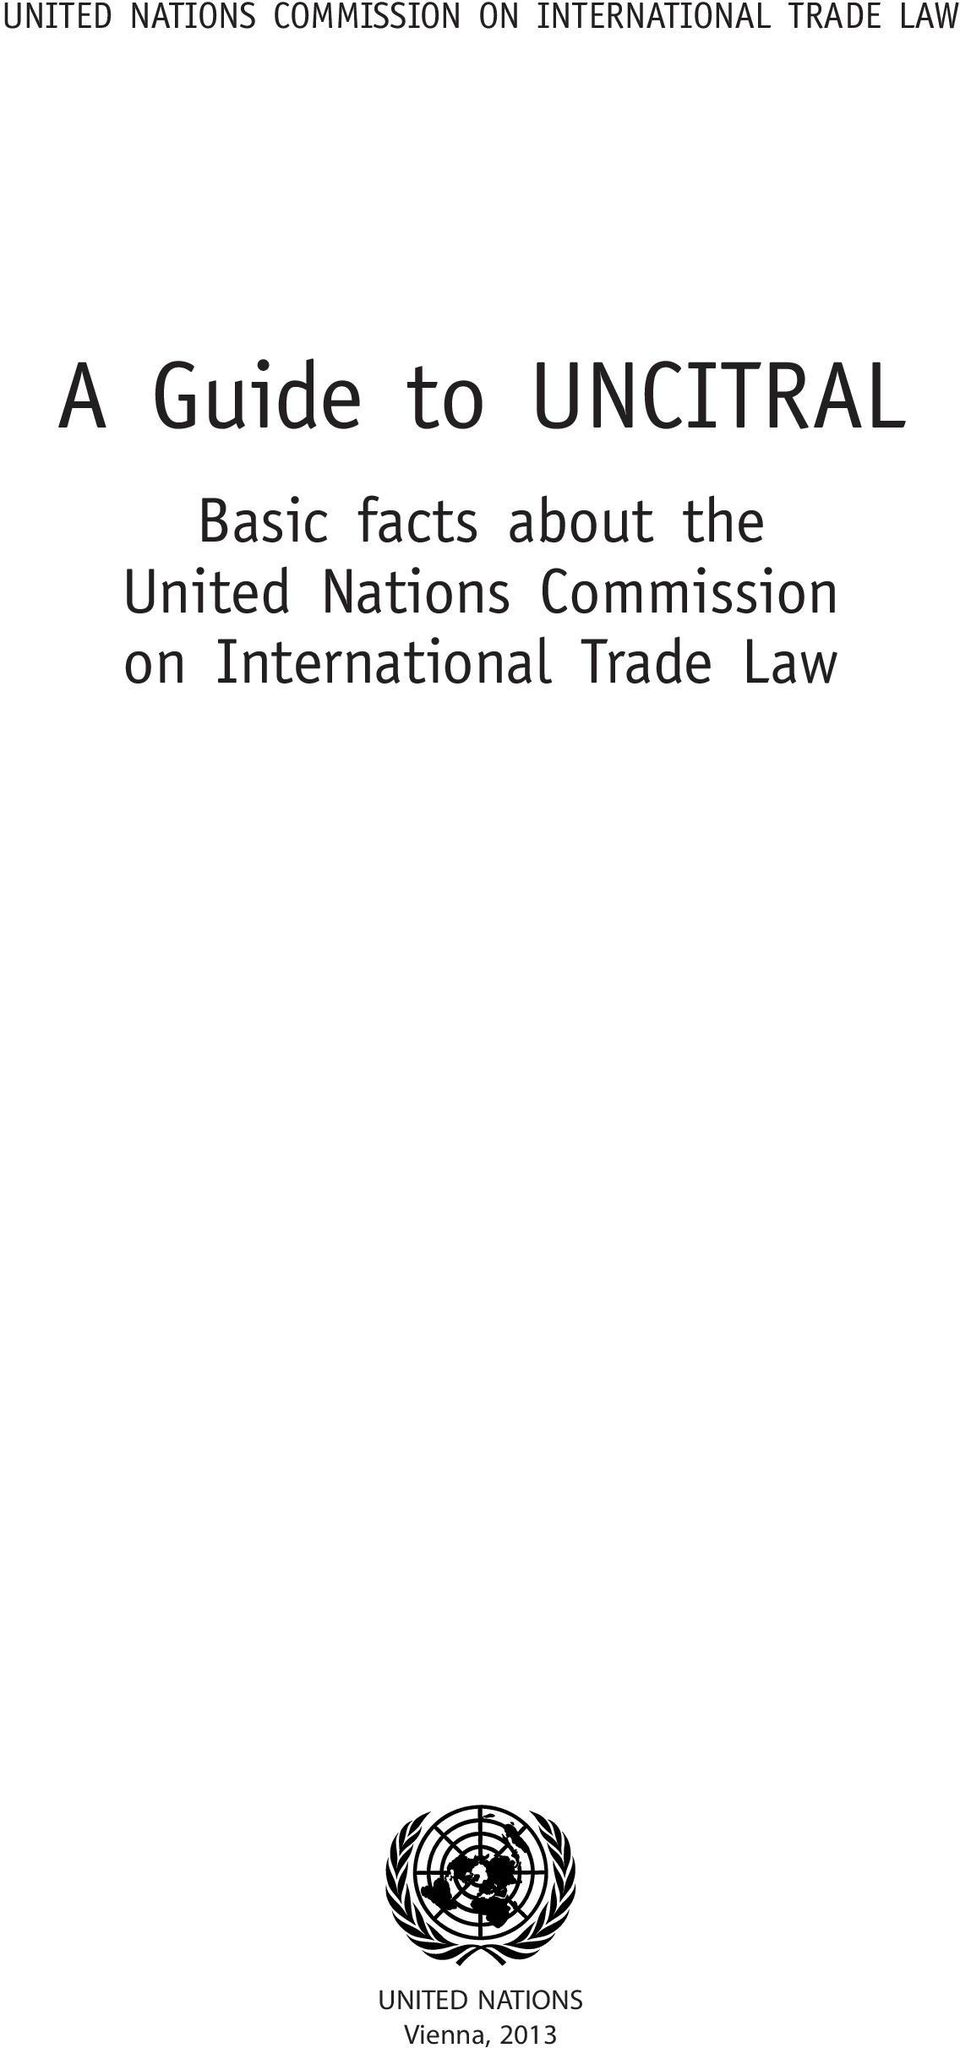 about the United Nations Commission on